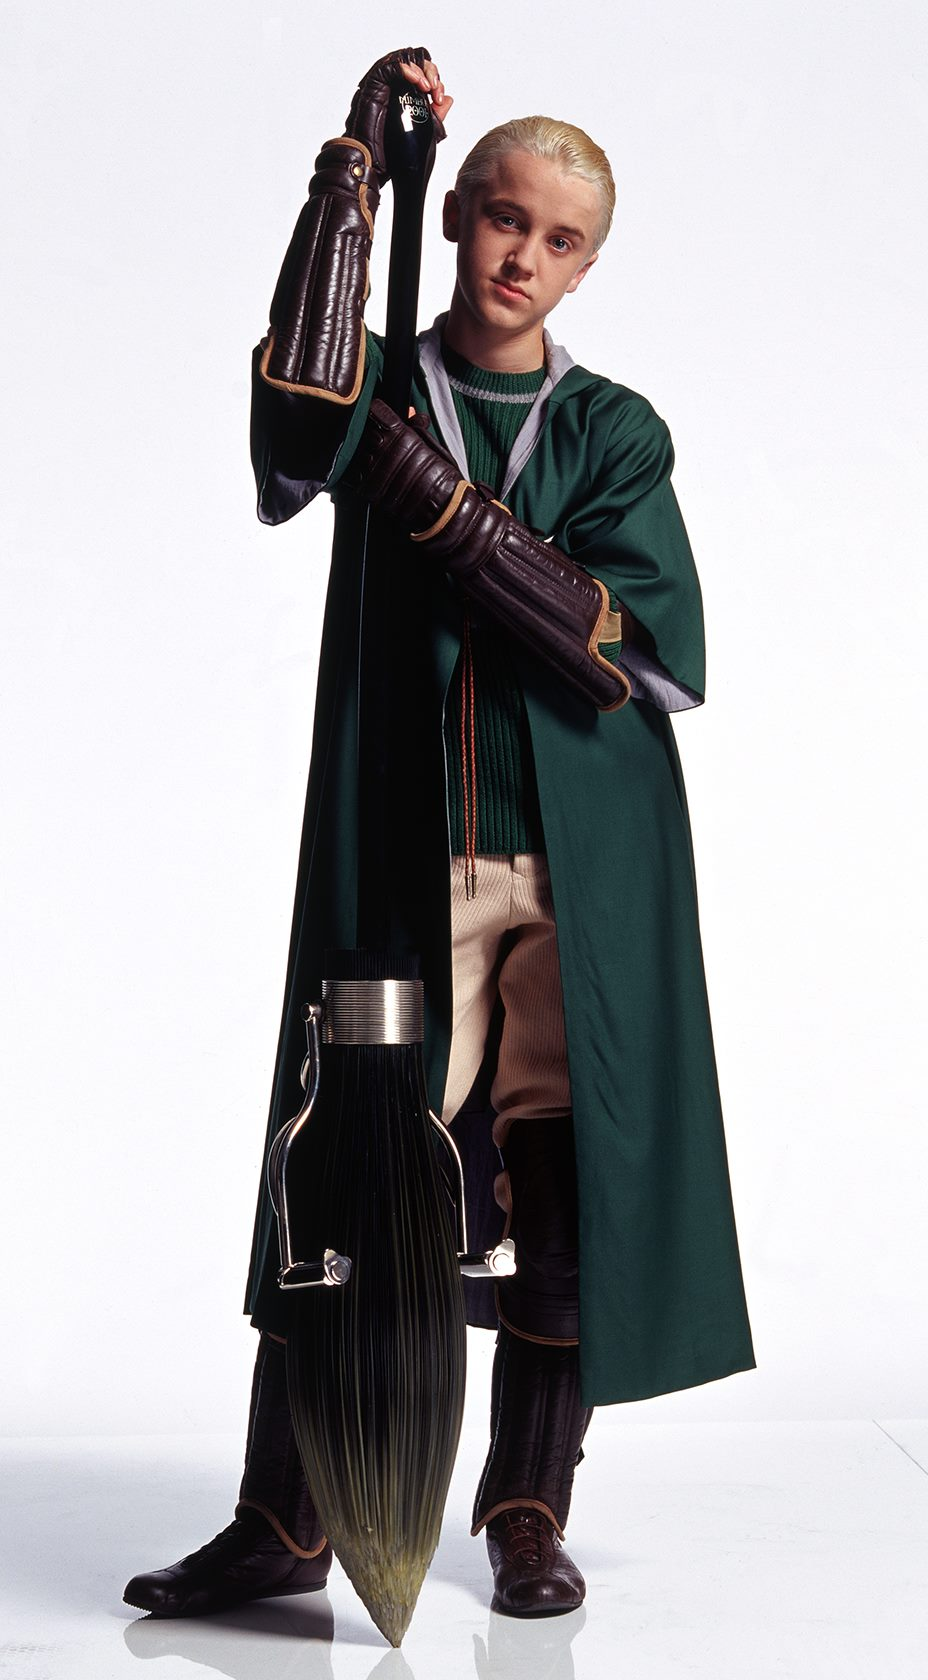 Slytherin quidditch teams nimbus 2001 broomsticks